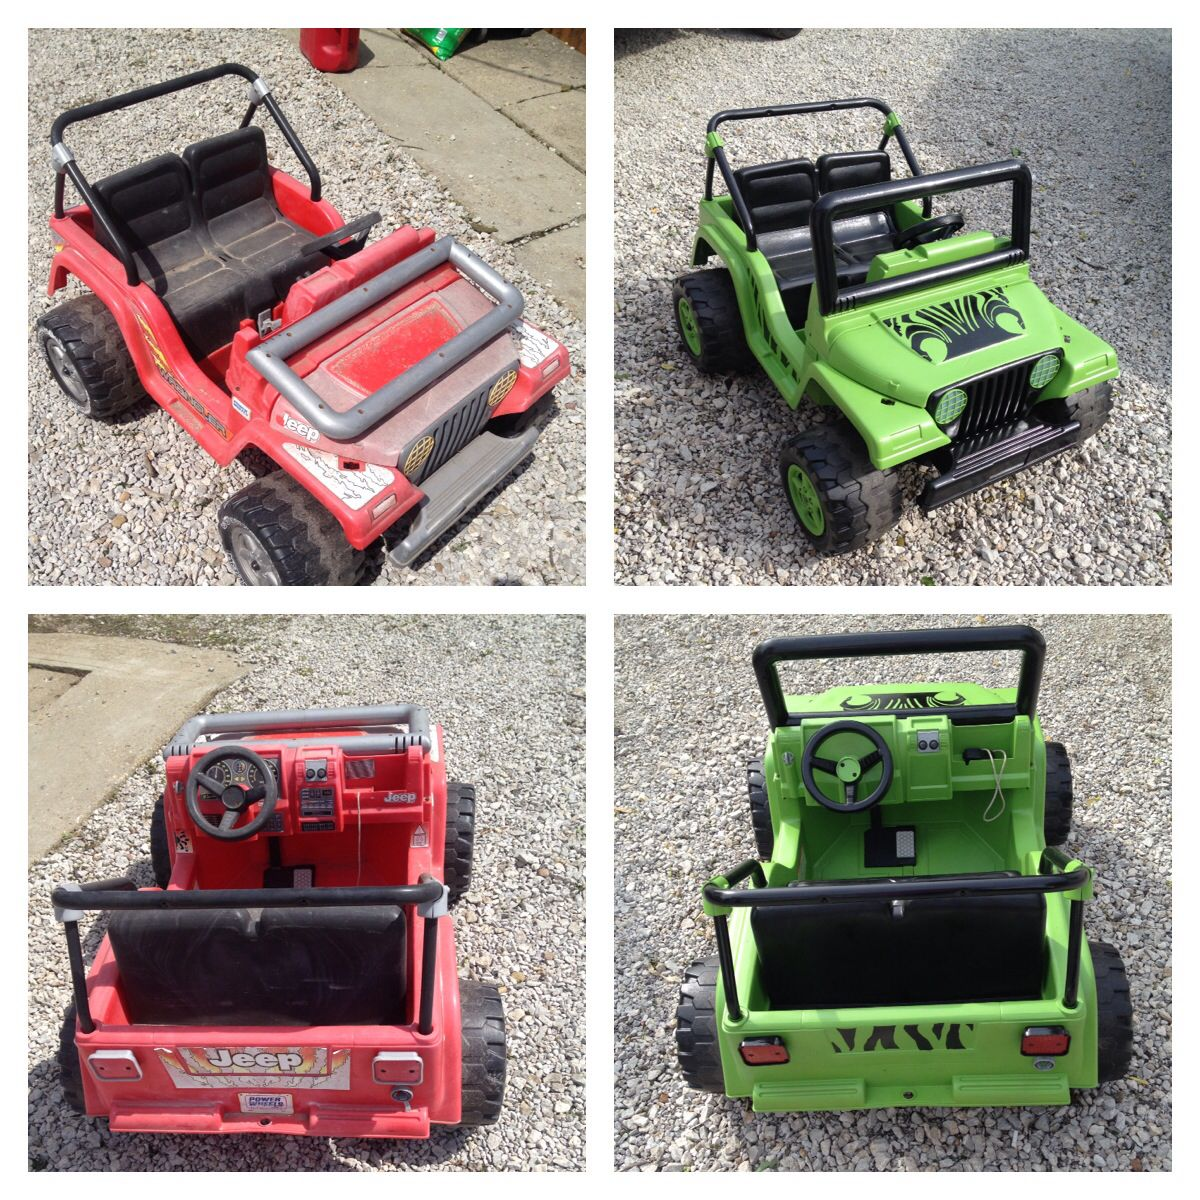 This Is A Power Wheels Jeep I Revived For My Nephews By Sanding It Ride On Down And Putting Custom Paint Job